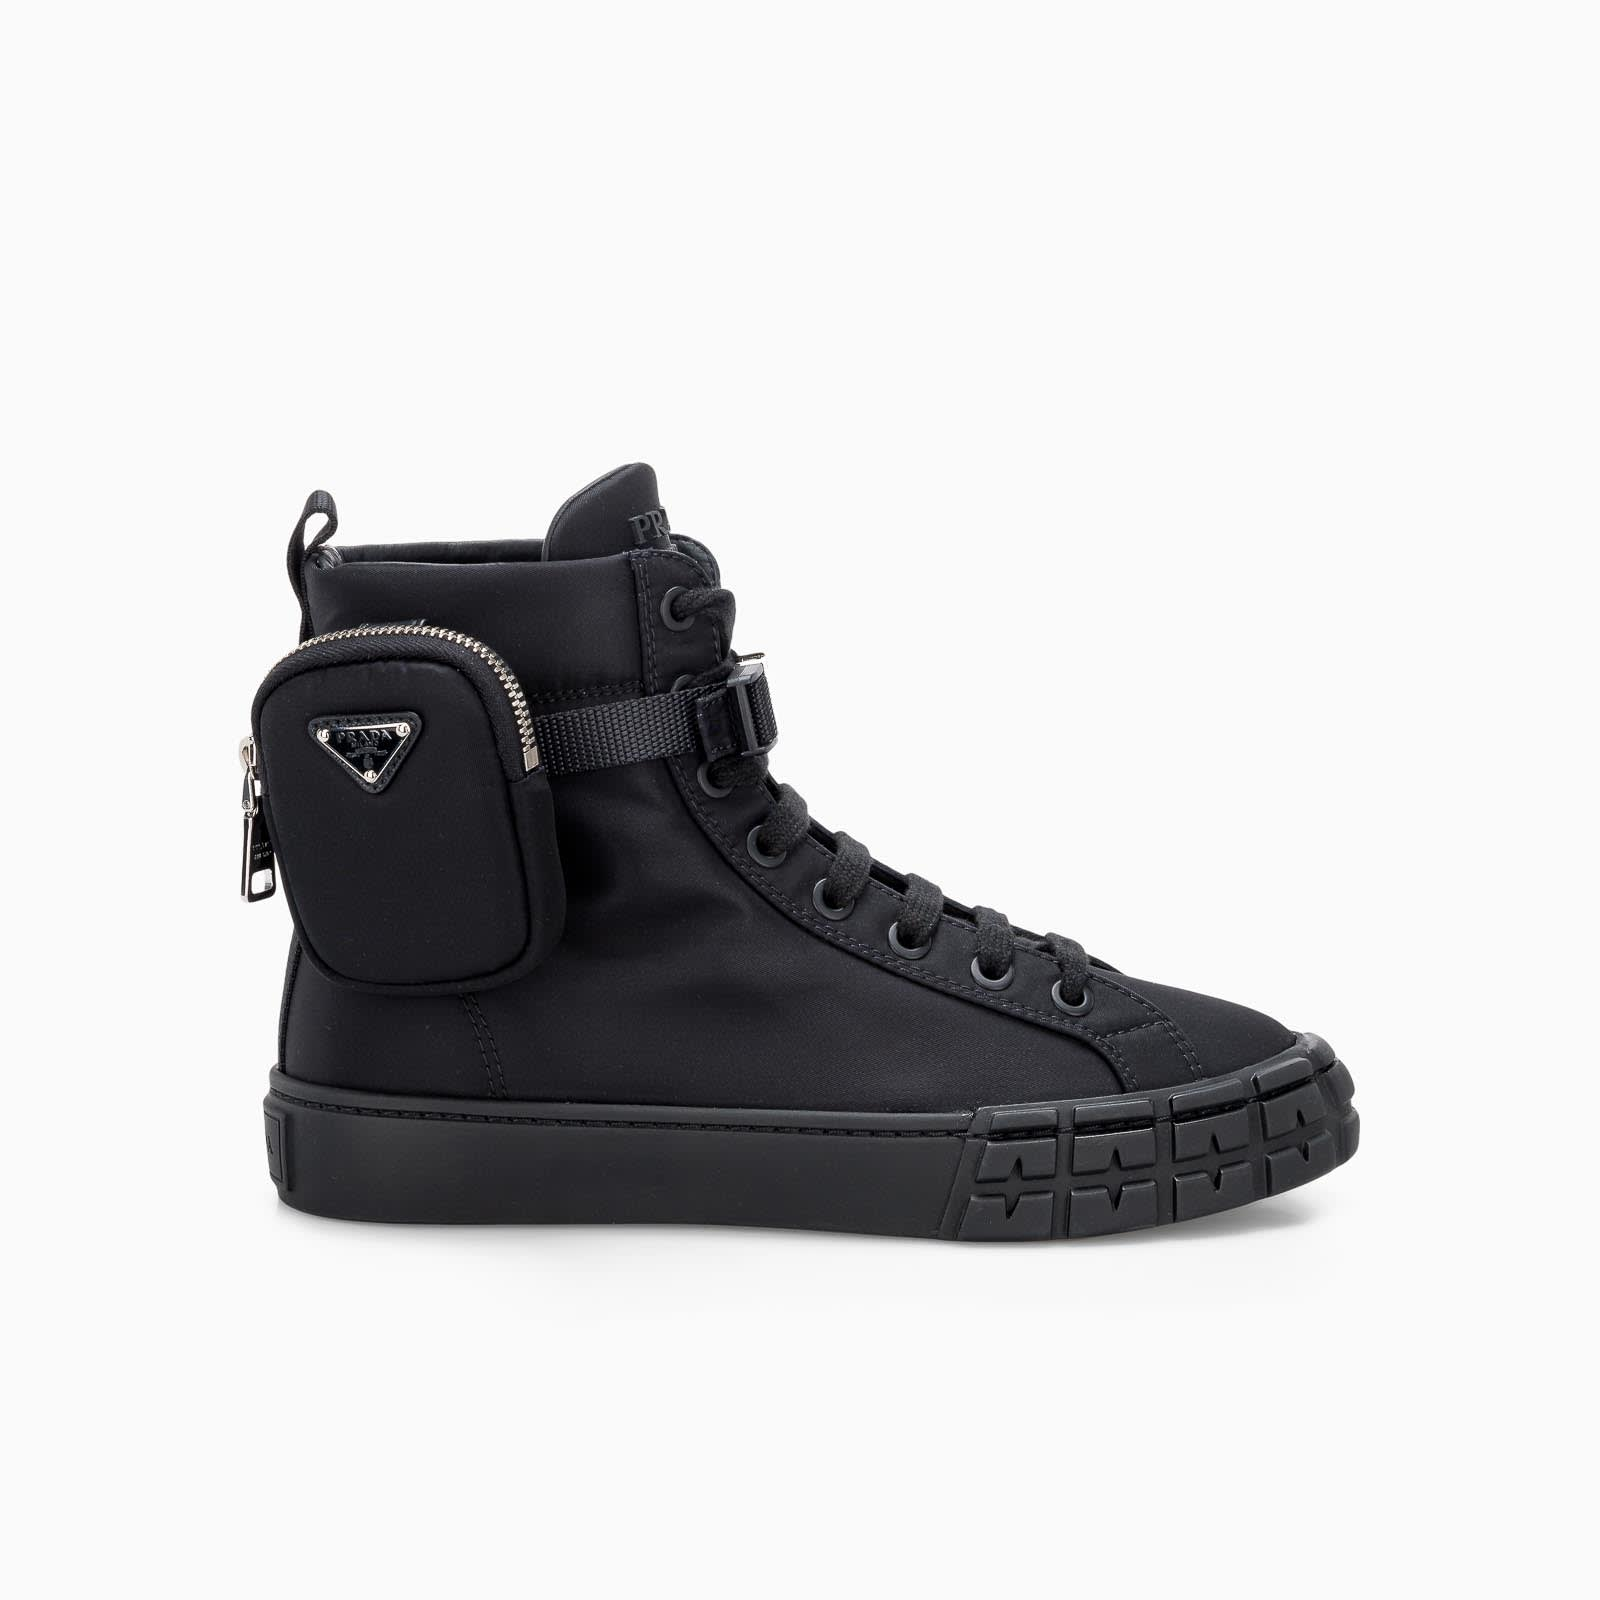 Prada WHEEL HIGH-TOP SNEAKERS